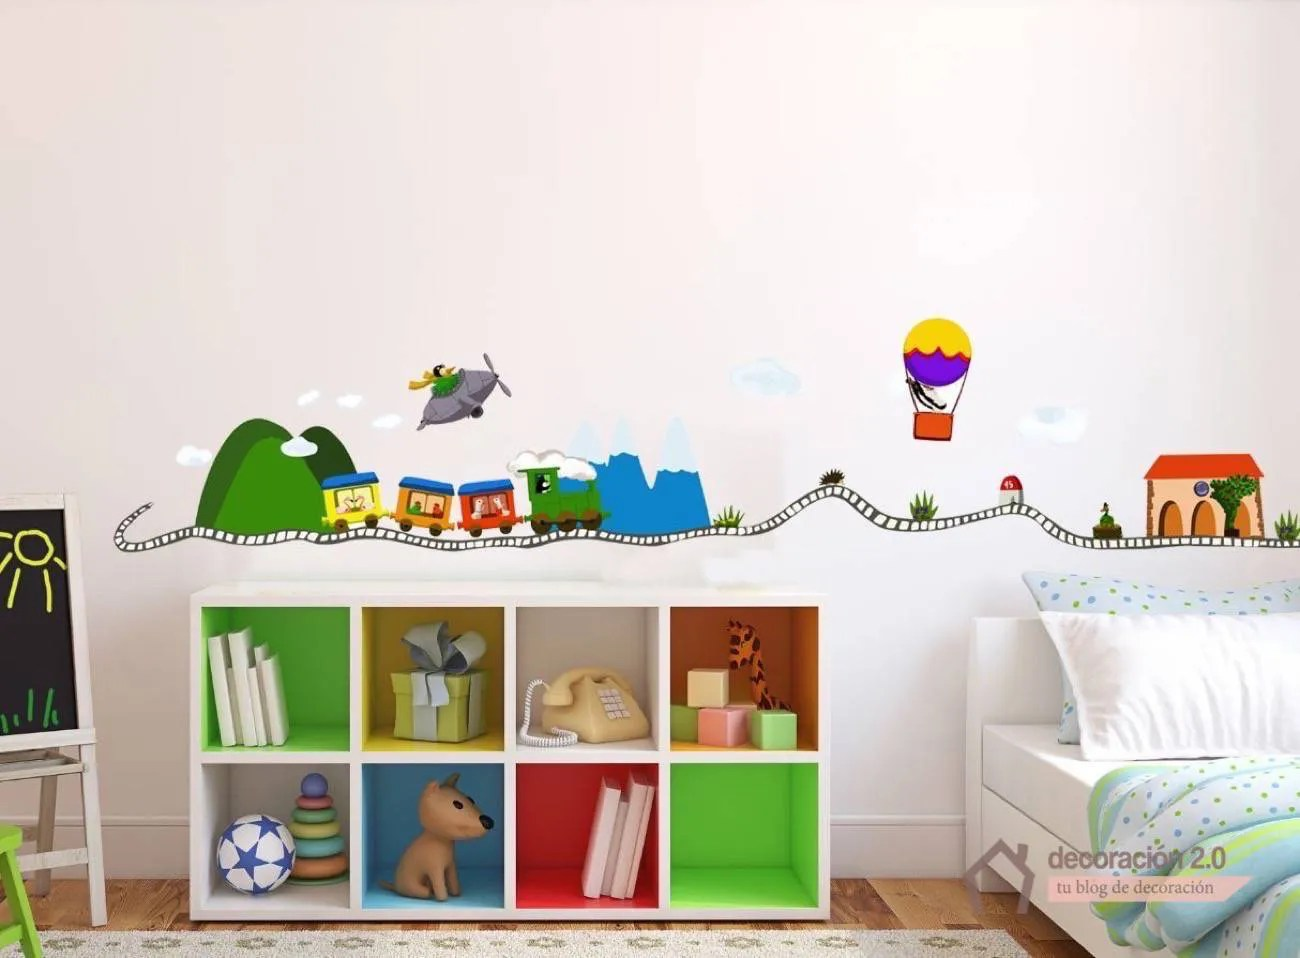 Decorar Pared Habitacion Infantil 5 Ideas Diy Para Decorar Nuestras Habitaciones Infantiles